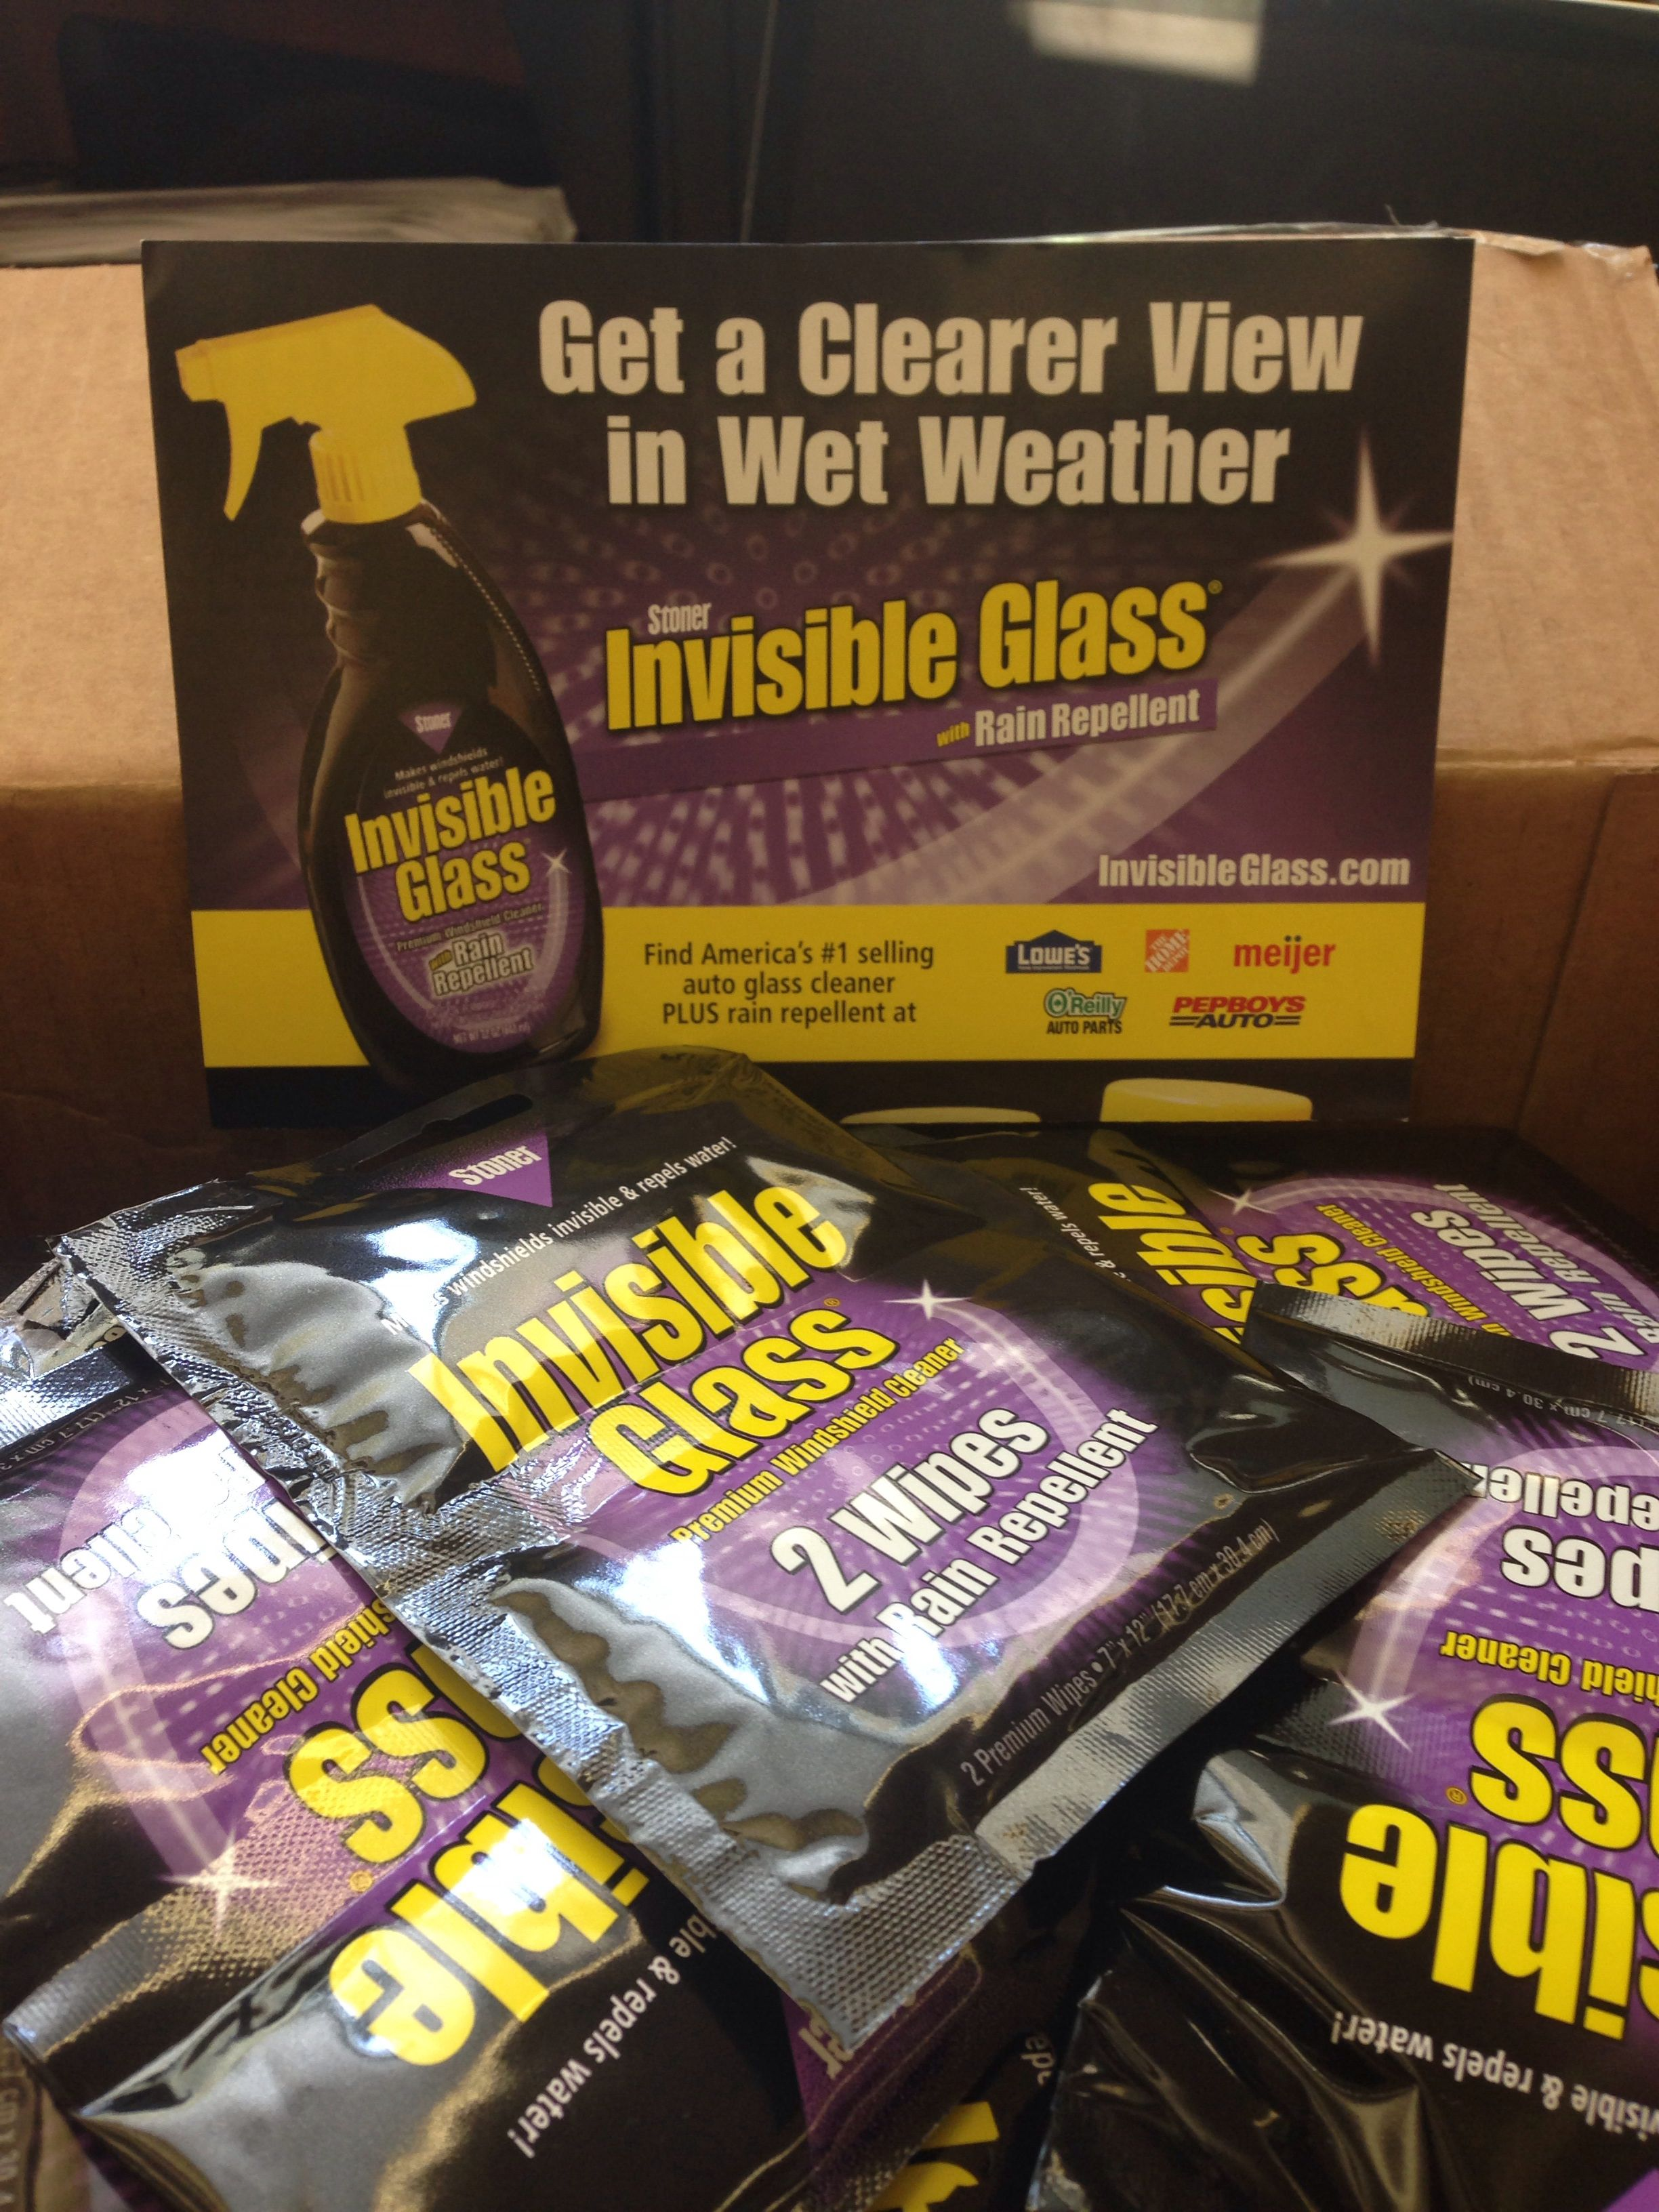 A Very Special THANK YOU To Stoner Invisible Glass For Donating - Car show goody bag stuffers